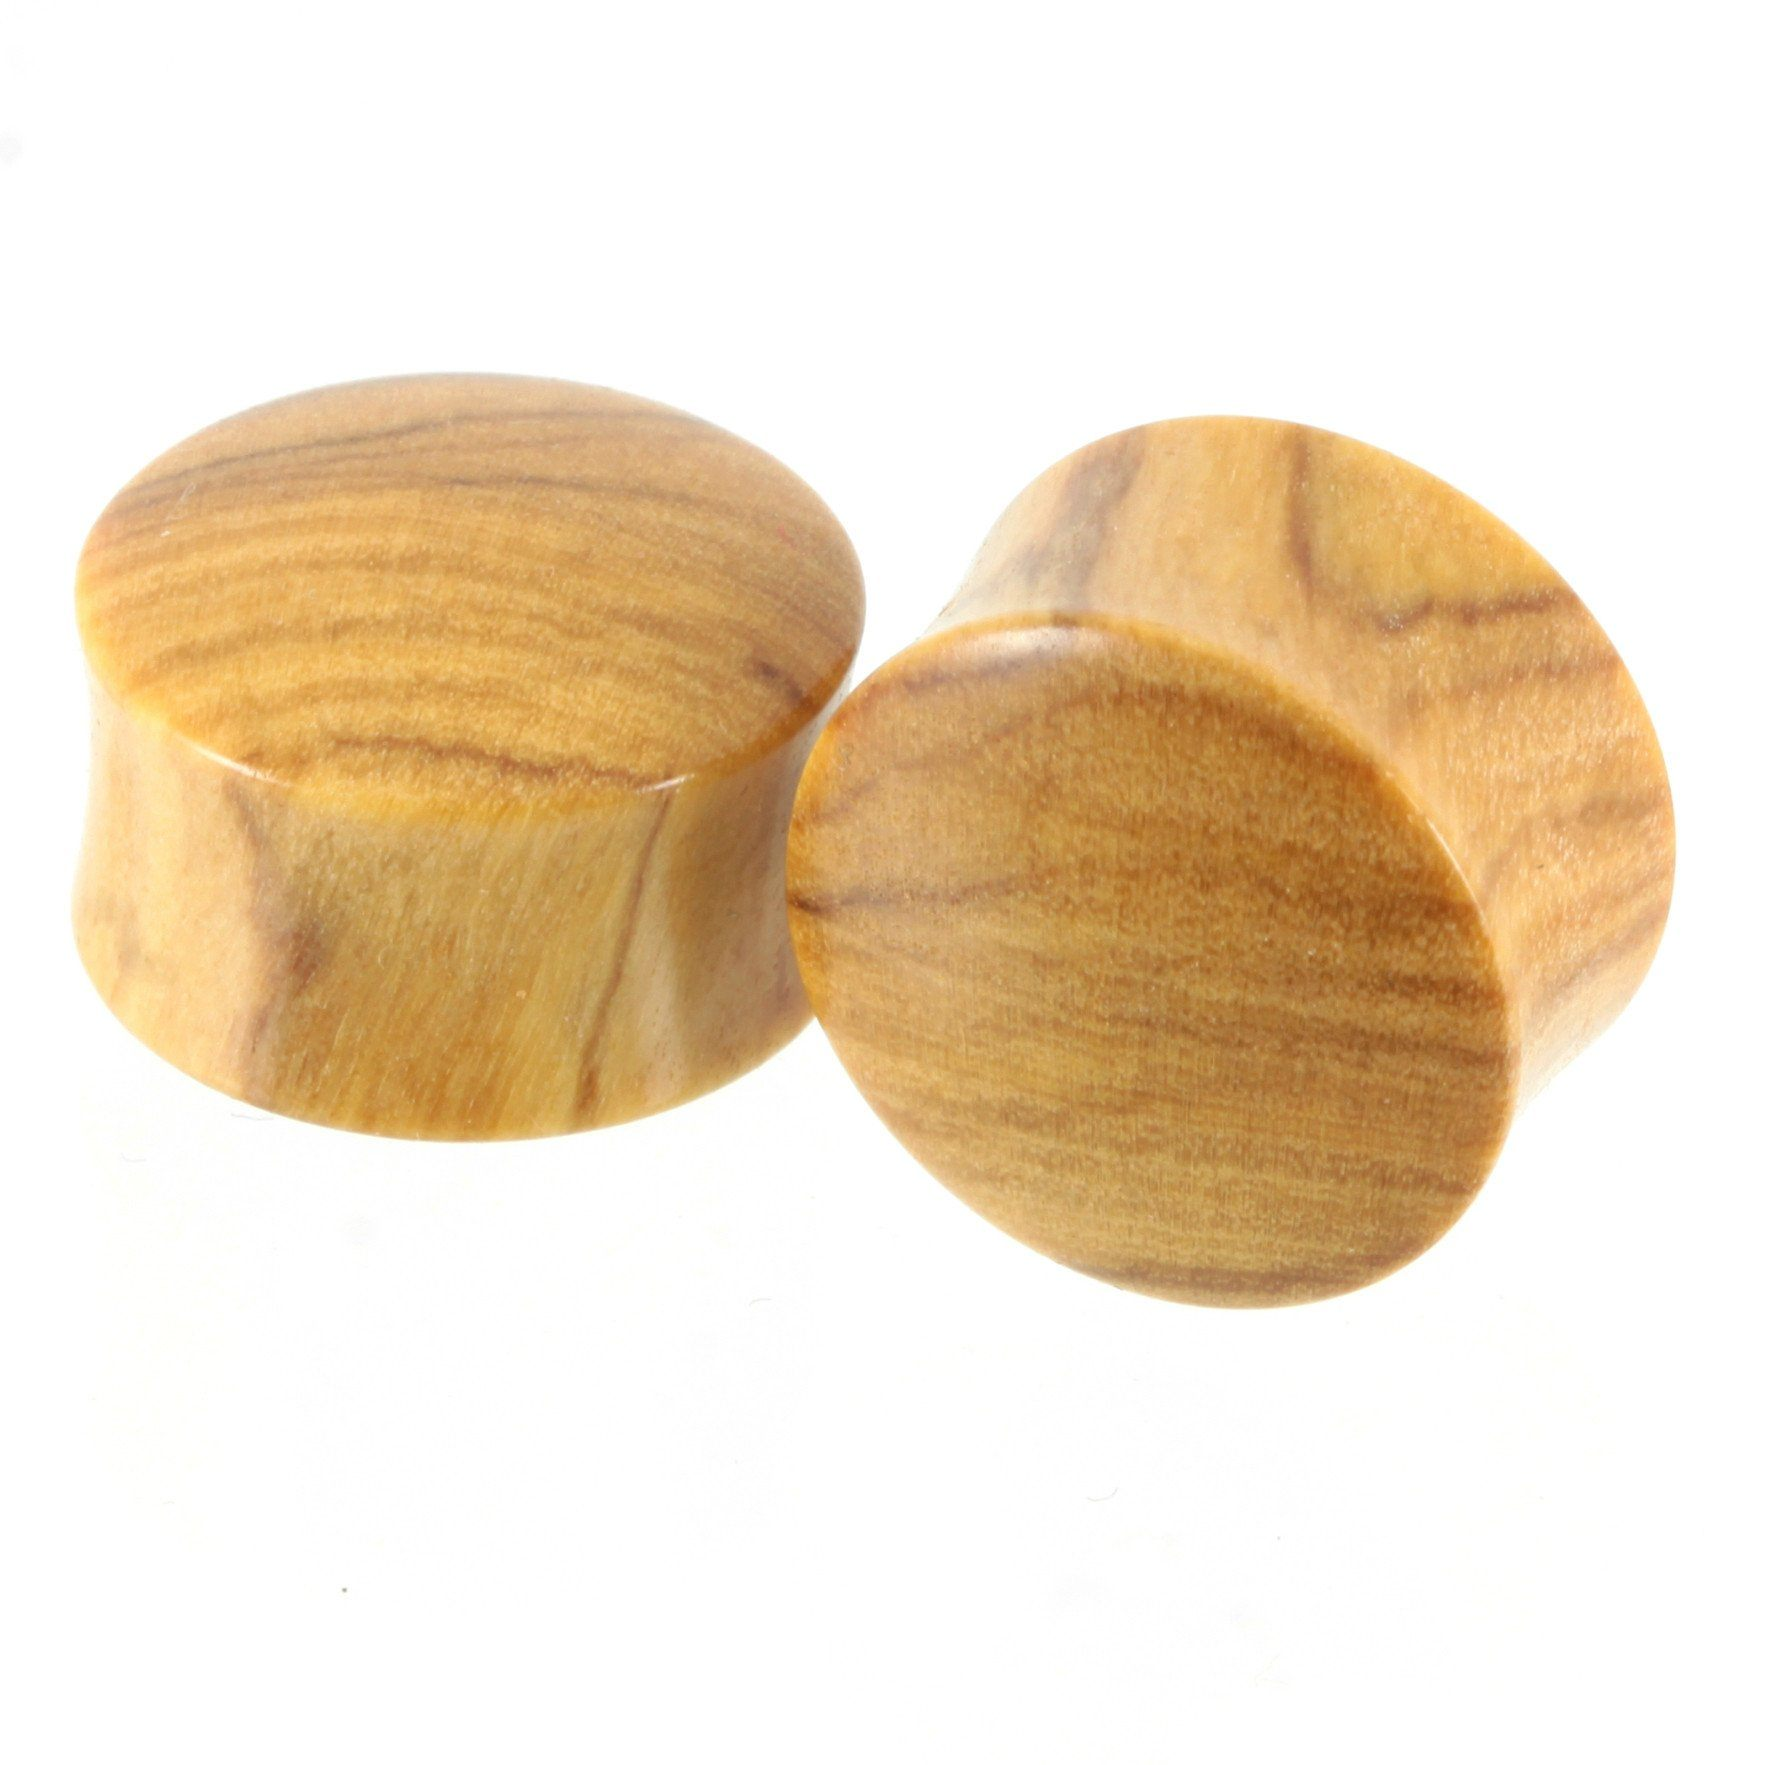 Olivewood Plugs, jewellery, body jewellery. - Southshore Adornments